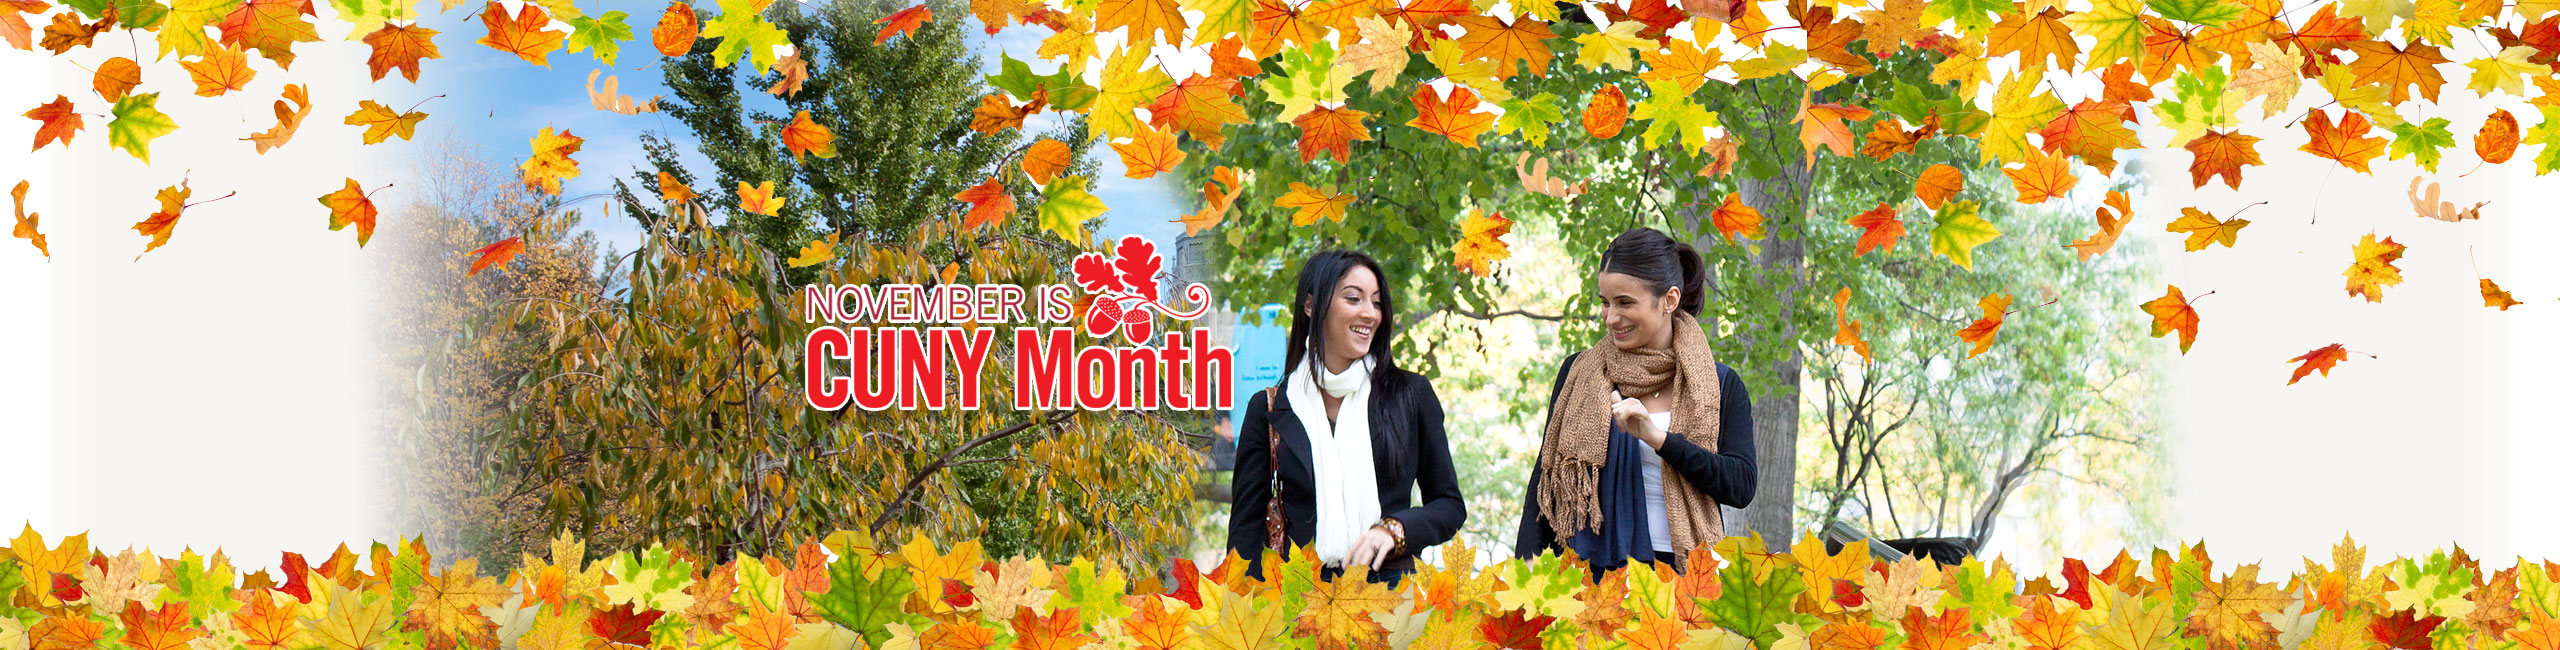 November is CUNY Month